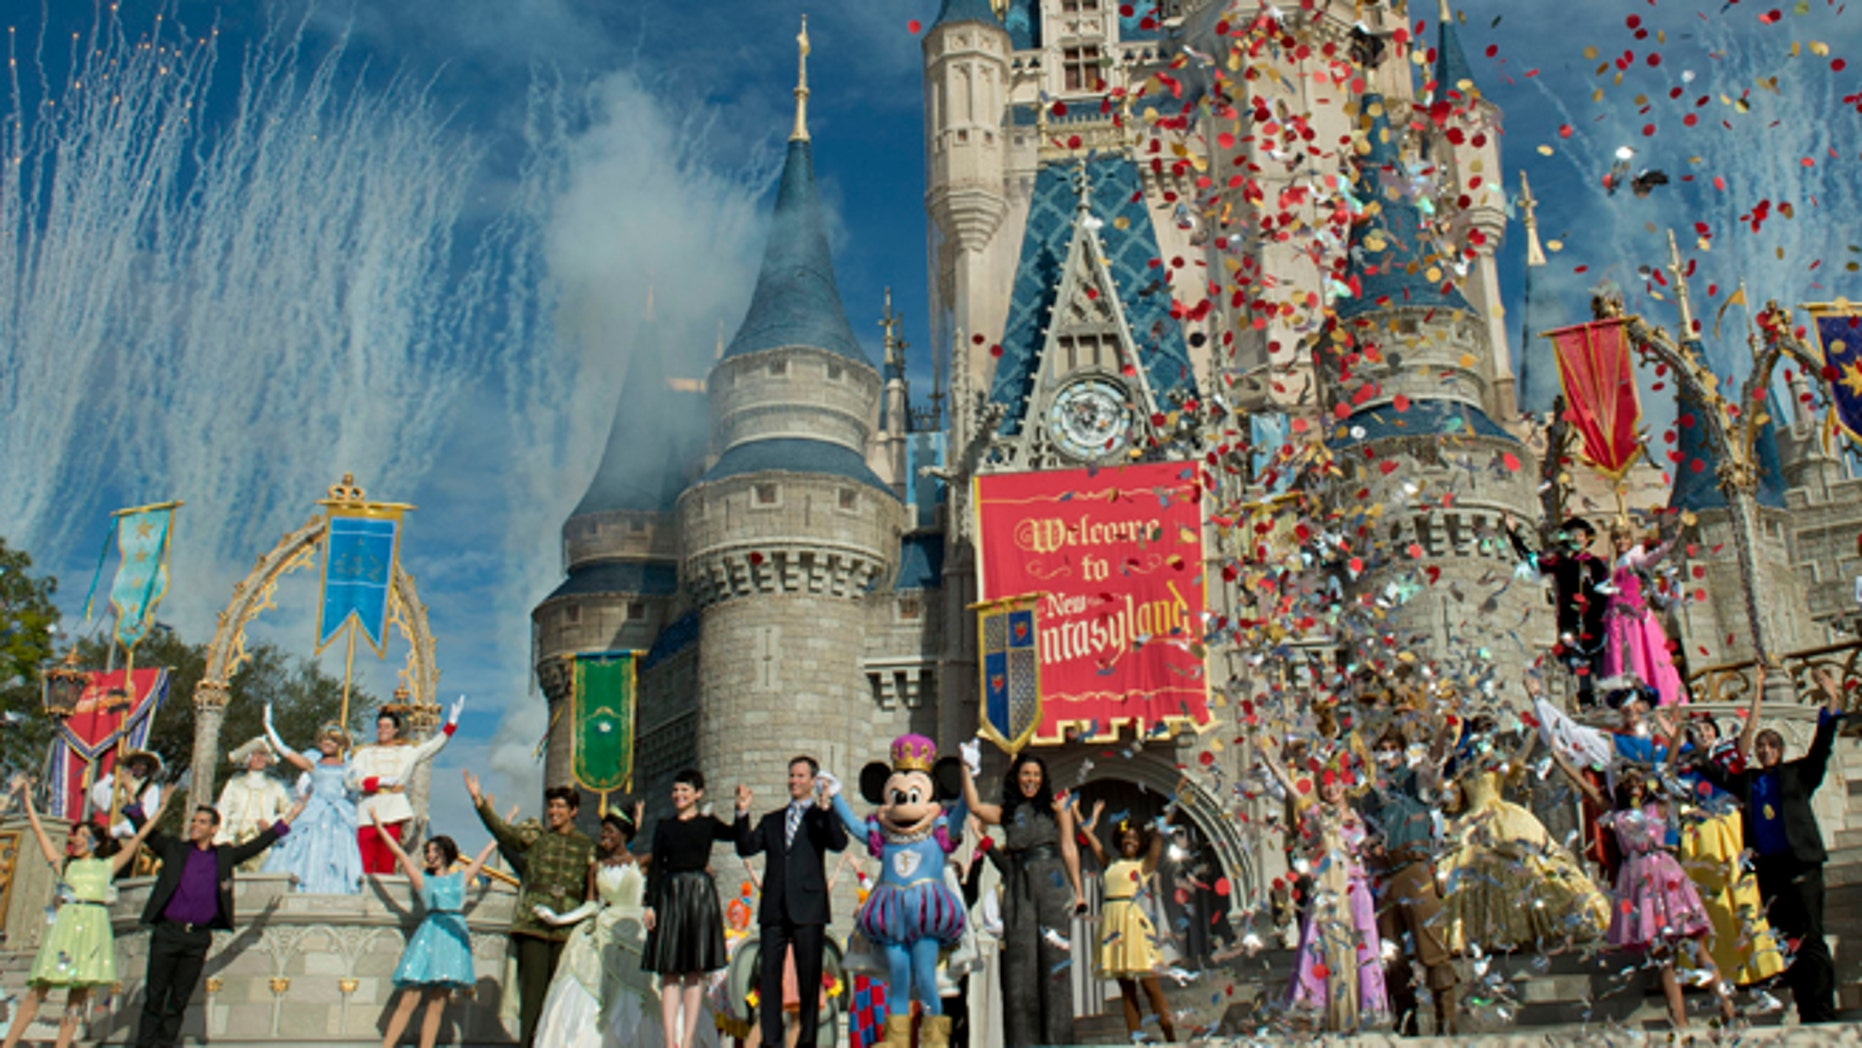 LAKE BUENA VISTA, FL - DECEMBER 06:  In this handout image provided by Disney Parks, fireworks and confetti fly at Cinderella Castle during the Grand Opening of New Fantasyland at Walt Disney World Resort December 6, 2012 in Lake Buena Vista, Florida.  Actress Ginnifer Goodwin, Disney Parks and Resorts Chairman Tom Staggs, singer Jordin Sparks and Mickey Mouse joined dozens of Disney characters on Cinderella Castle stage to celebrate the opening. New Fantasyland is a new area in the Magic Kingdom and is the largest expansion in the 41-year history of the theme park.  (Photo by Kent Phillips/Disney Parks via Getty Images)